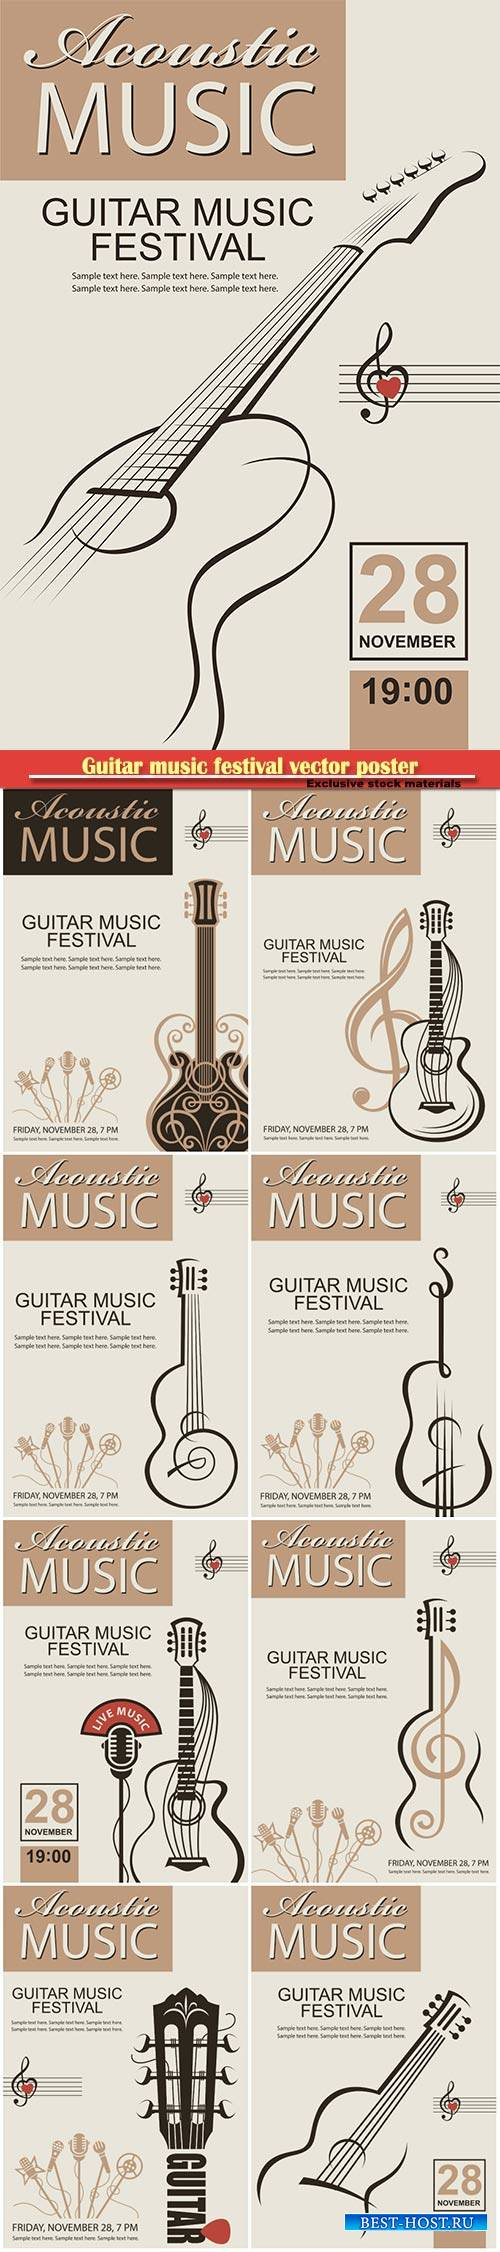 Guitar music festival vector poster